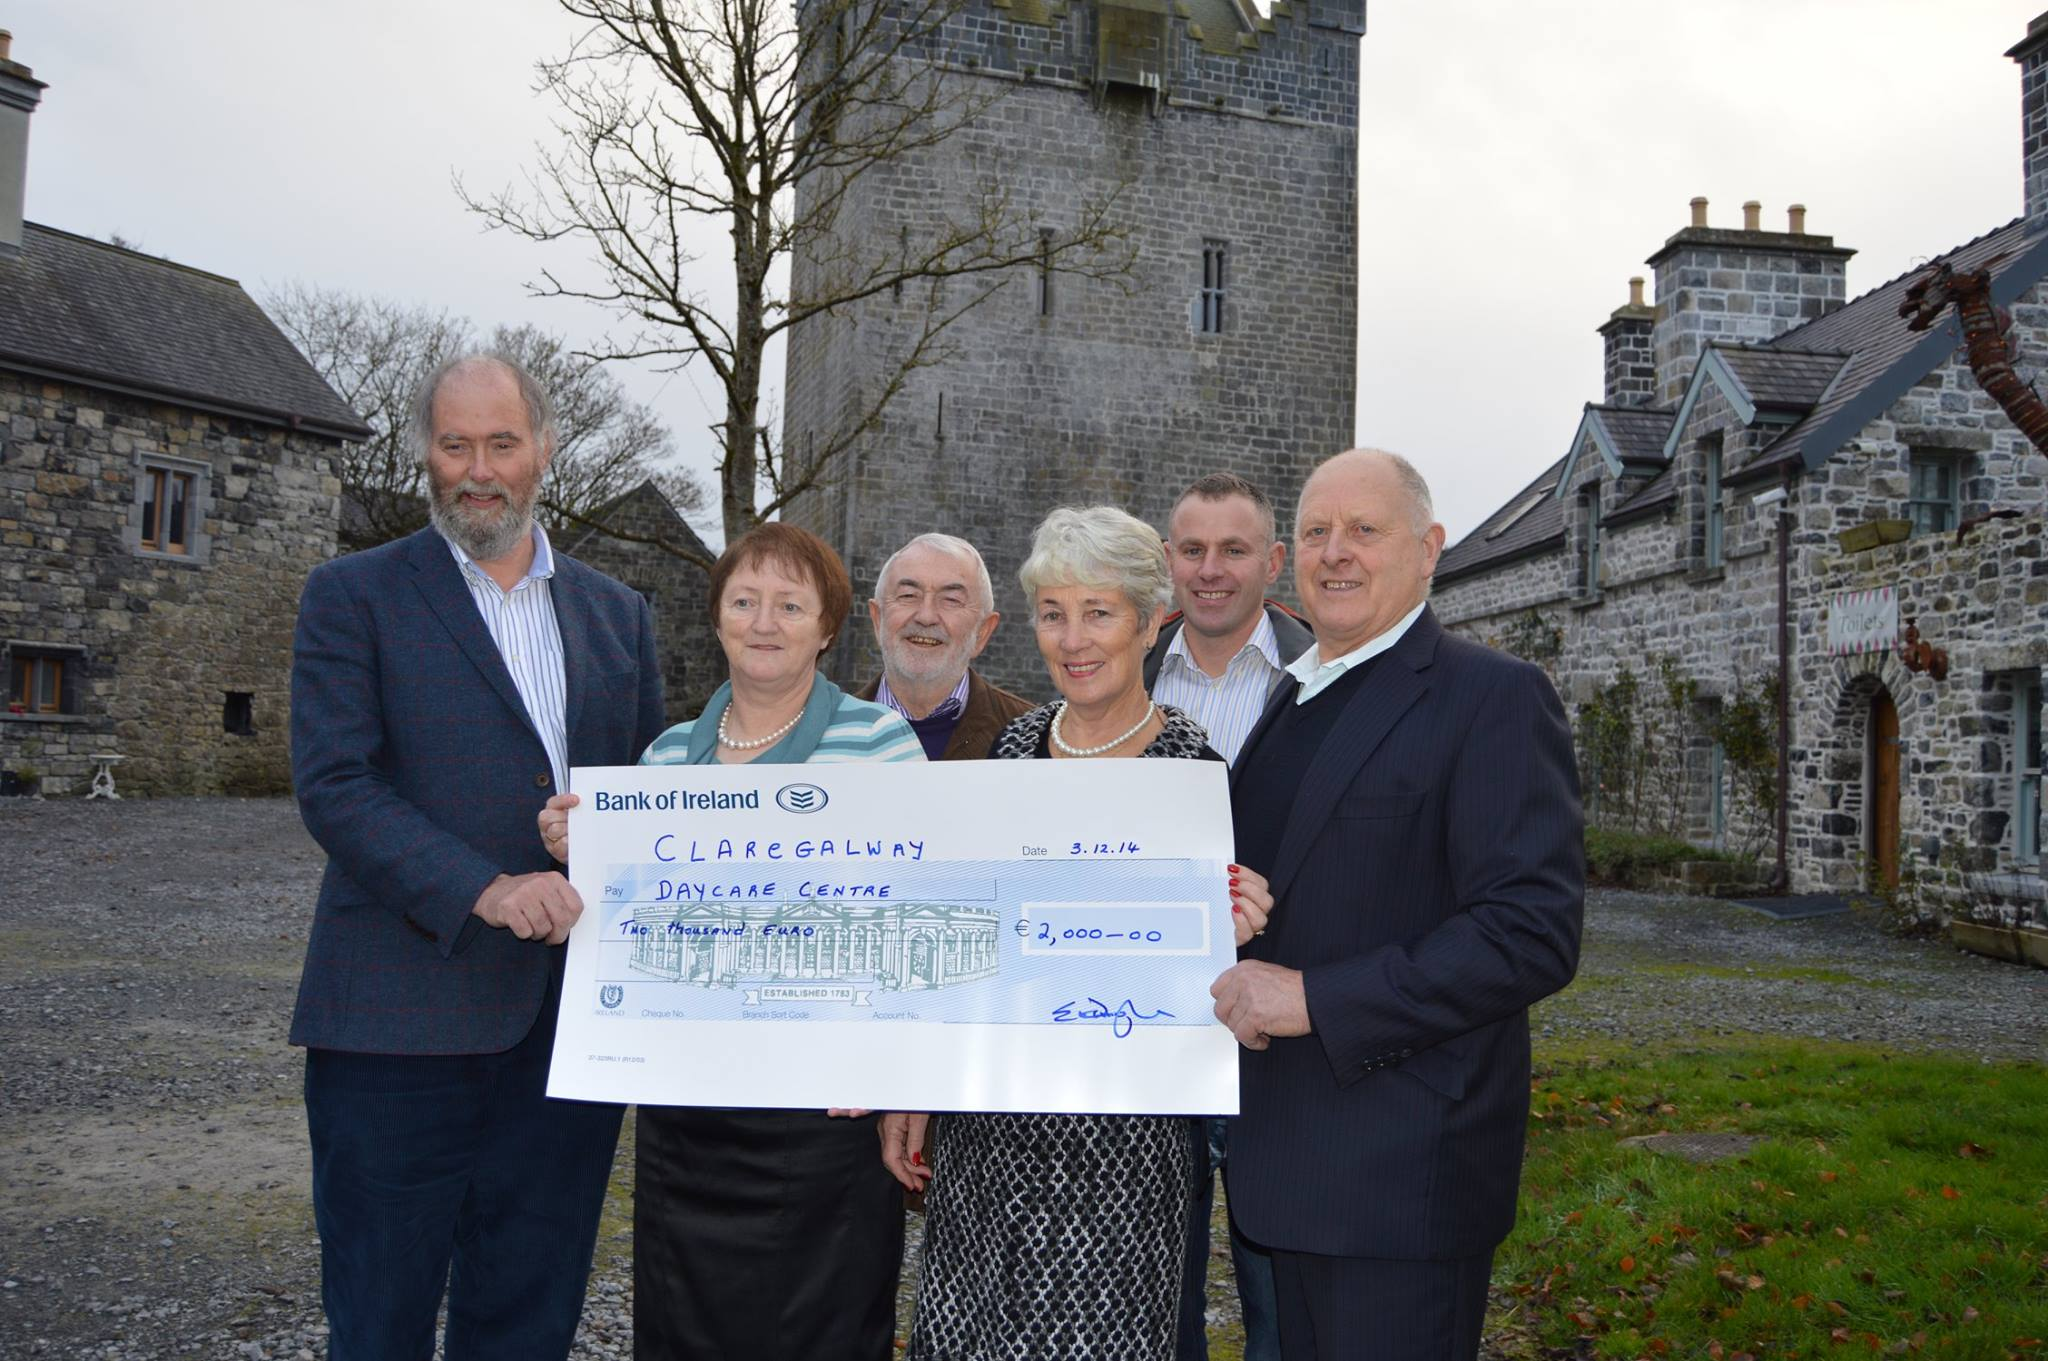 Pictured on 5th of December is Eamonn O'Donoghue of Claregalway Castle presenting a cheque to the Claregalway & District Day Care Centre. Left to right: Dr O'Donoghue, Kathleen Caulfield, Pat Griffith, Julie McKenna, Mike Herewood and Seamus O'Connell. Photo by Josette Farrell.